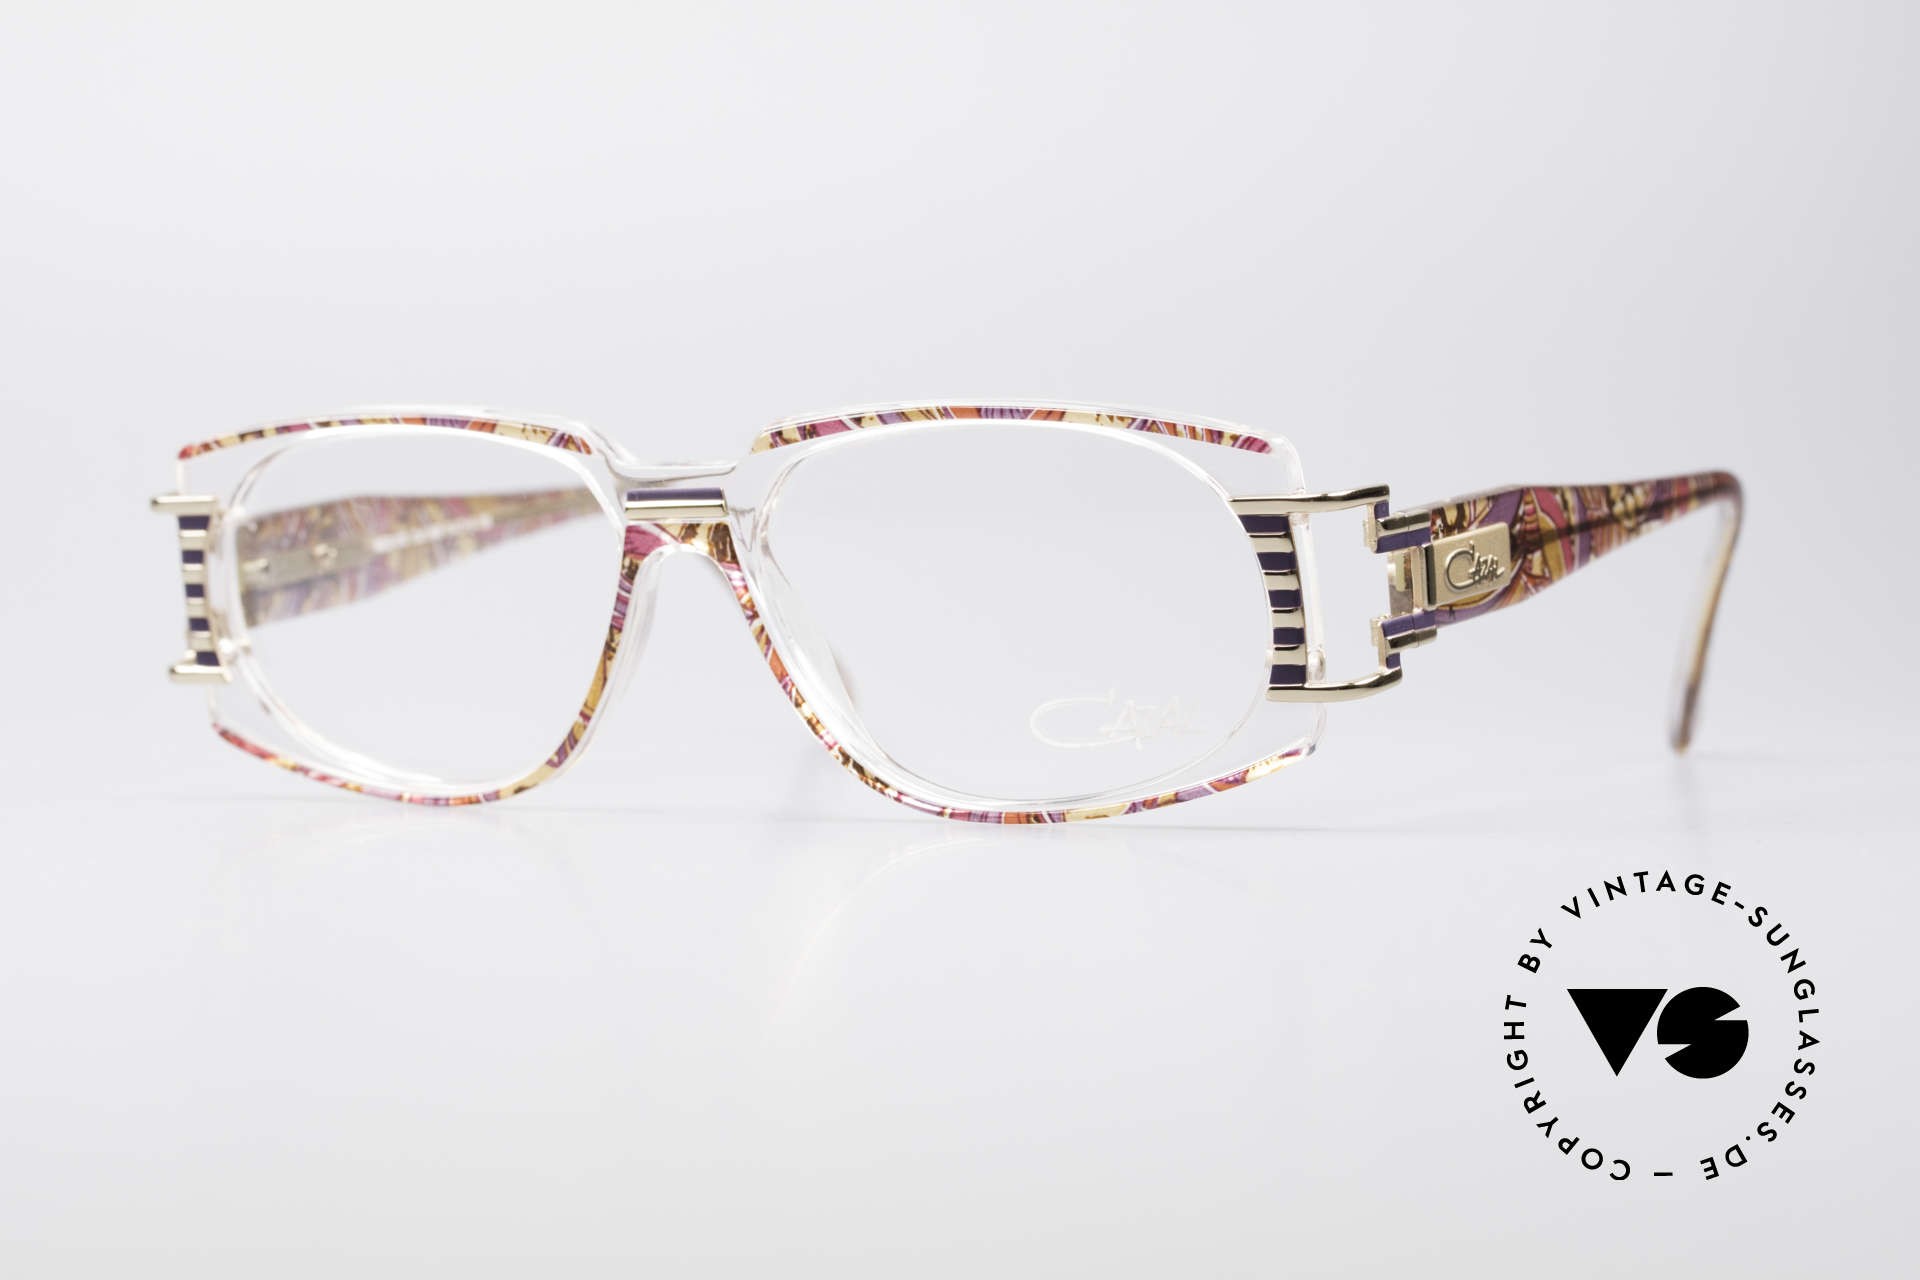 Cazal 372 Rare HipHop Vintage Eyeglasses, MOD372: ultra rare Cazal vintage model from the mid 90's, Made for Men and Women